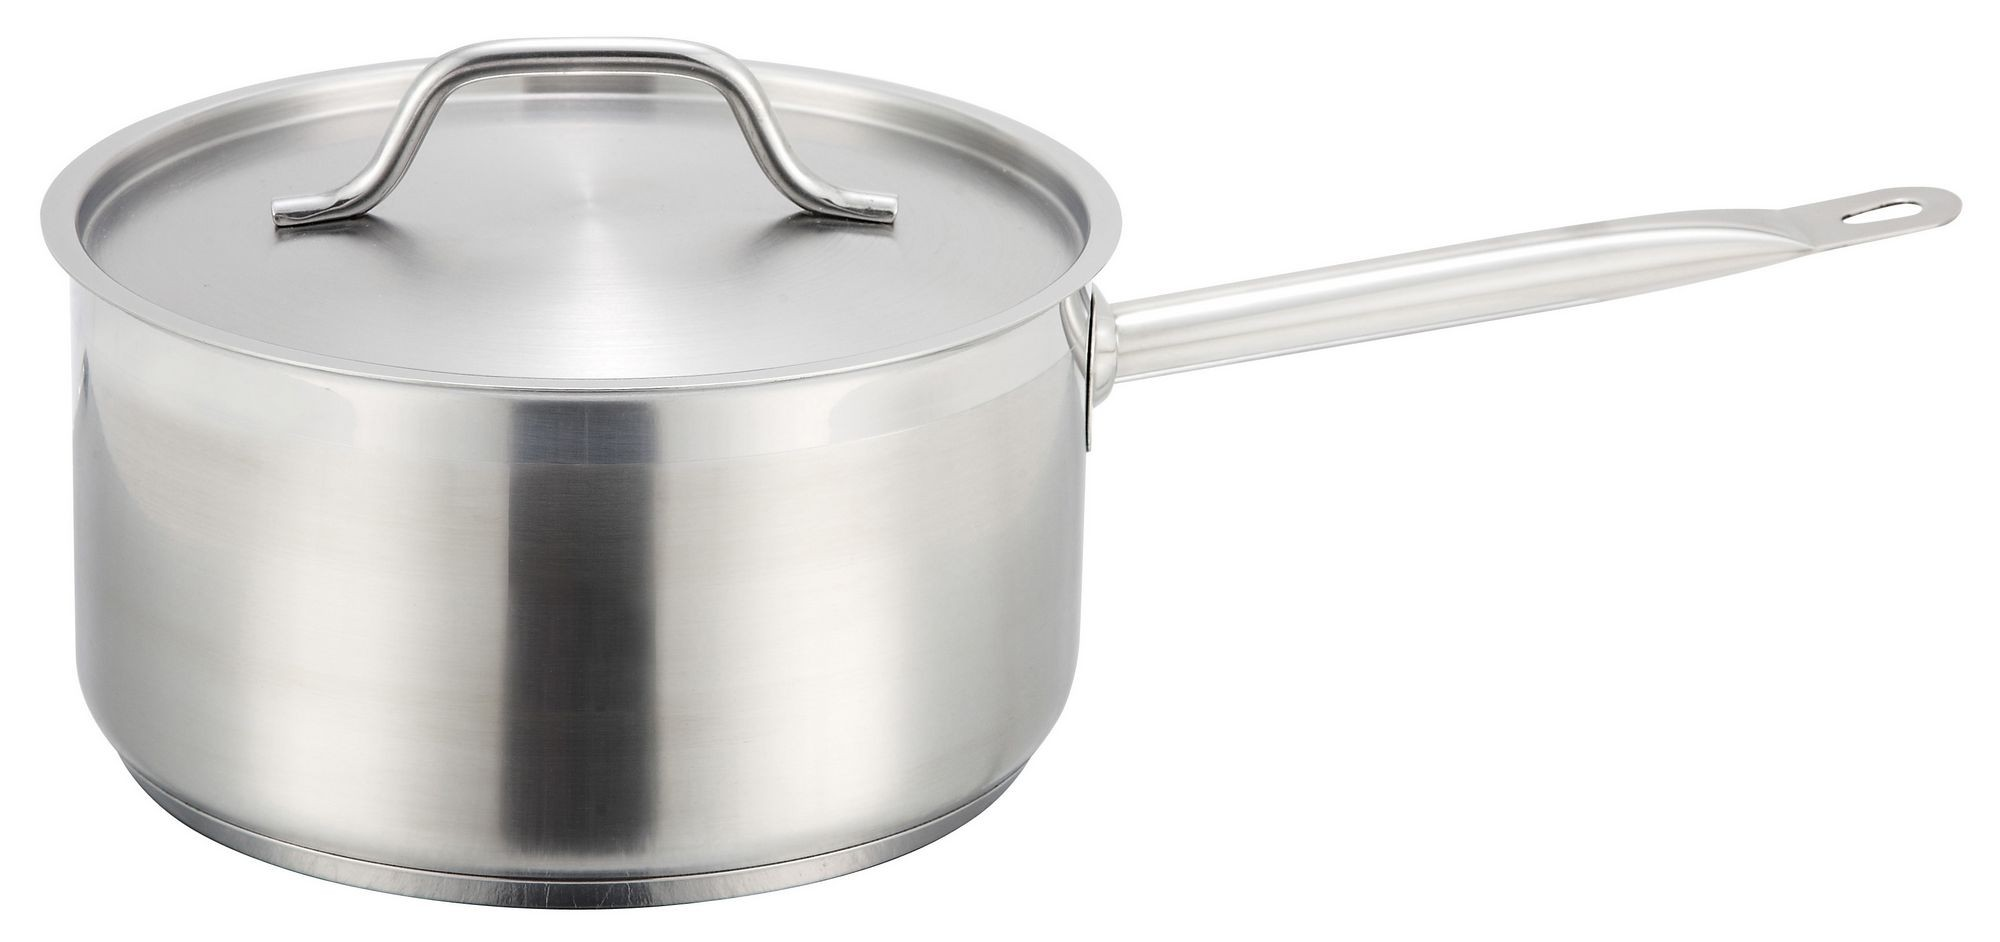 Winco SSSP-6 Premium Induction Stainless Steel 6 Qt. Sauce Pan with Cover